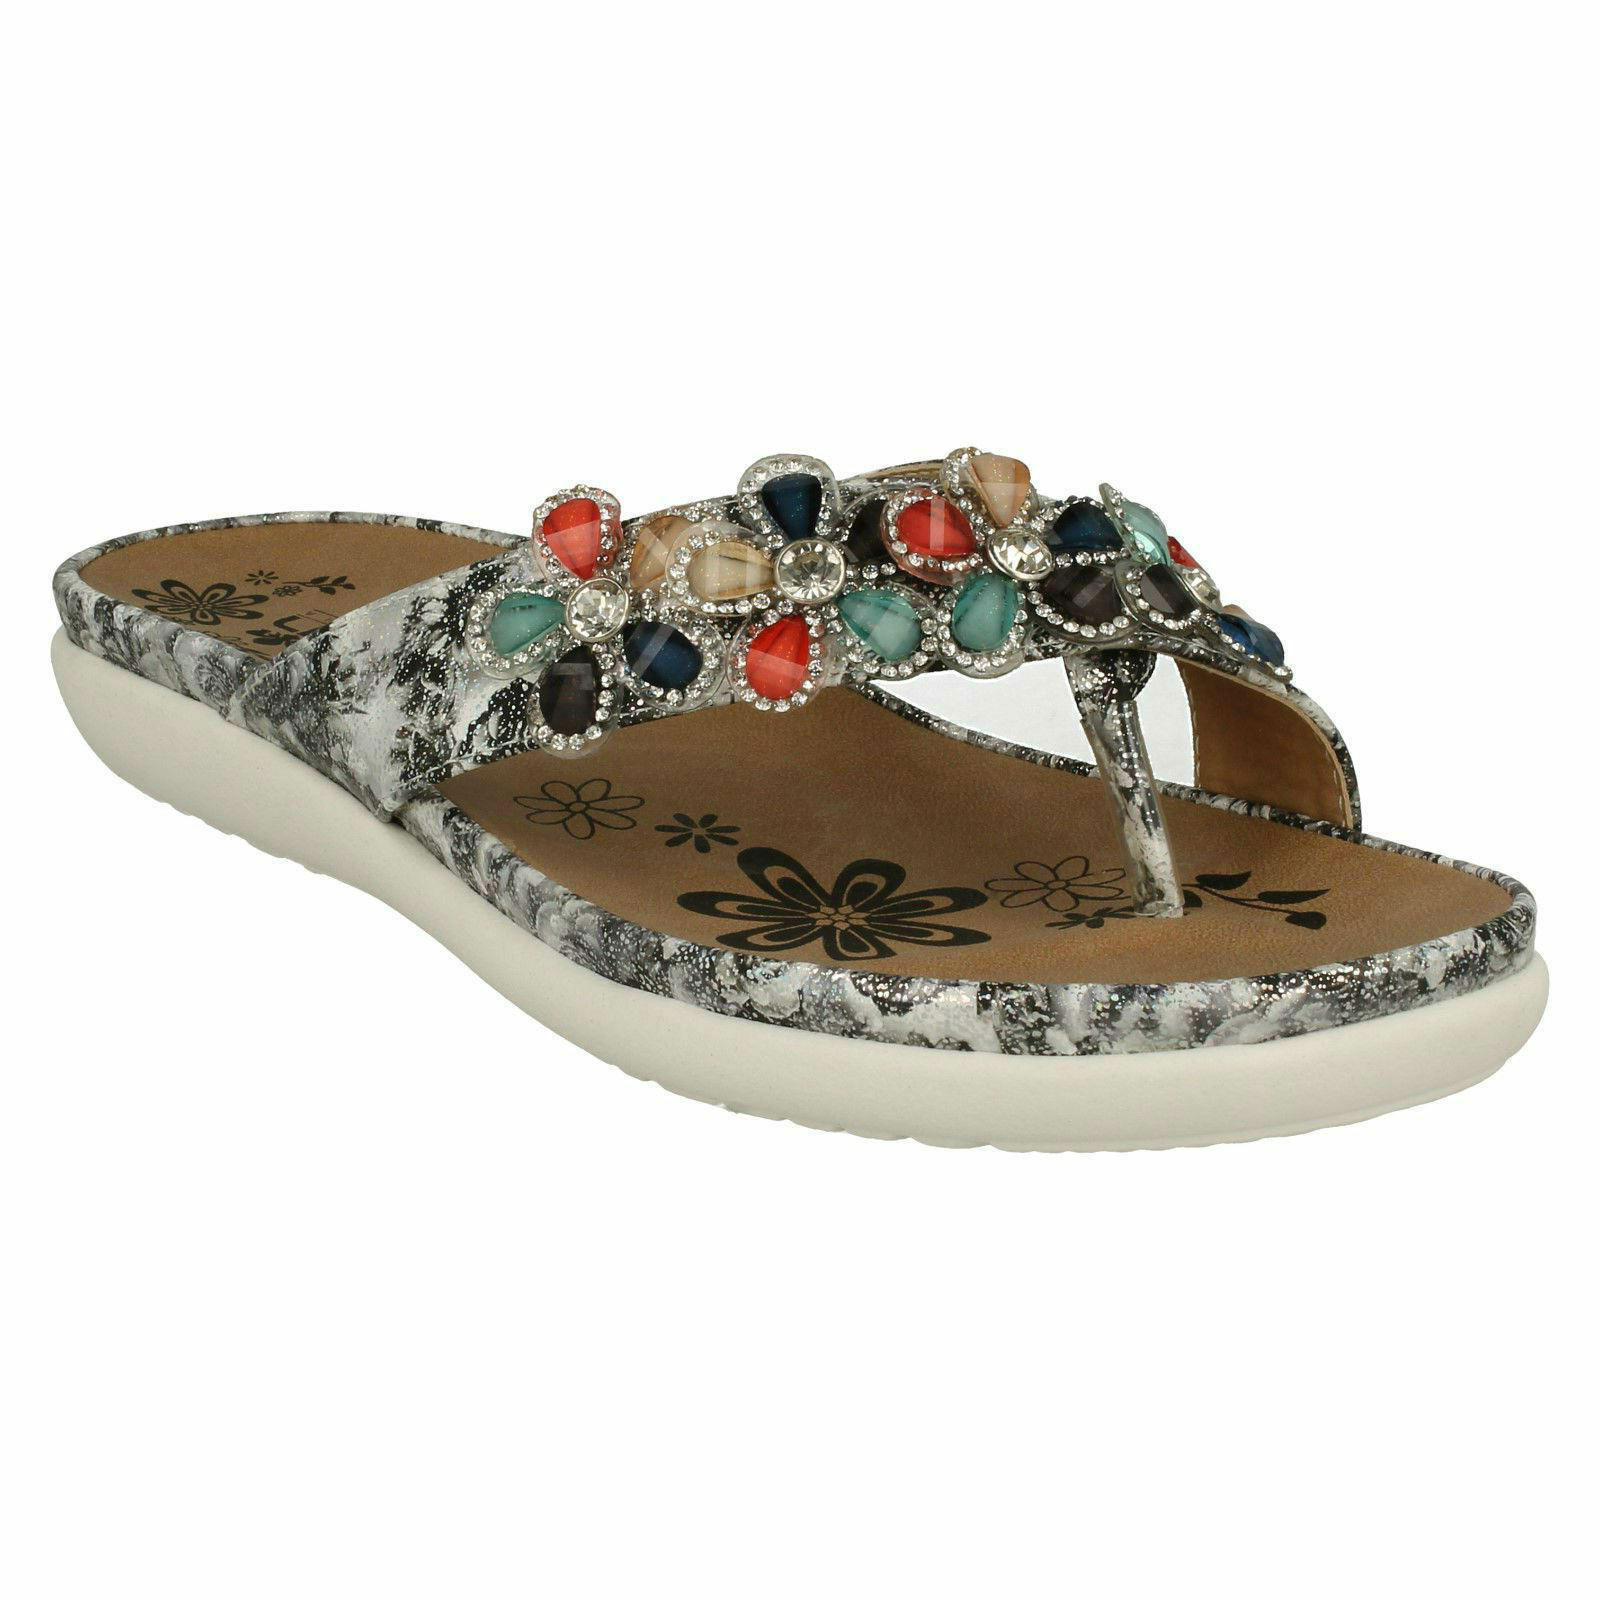 V9591 LADIES RIEKER JEWELLED SUMMER SUMMER SUMMER BEACH CASUAL SLIP ON TOE POST MULE SANDALS ac30bc